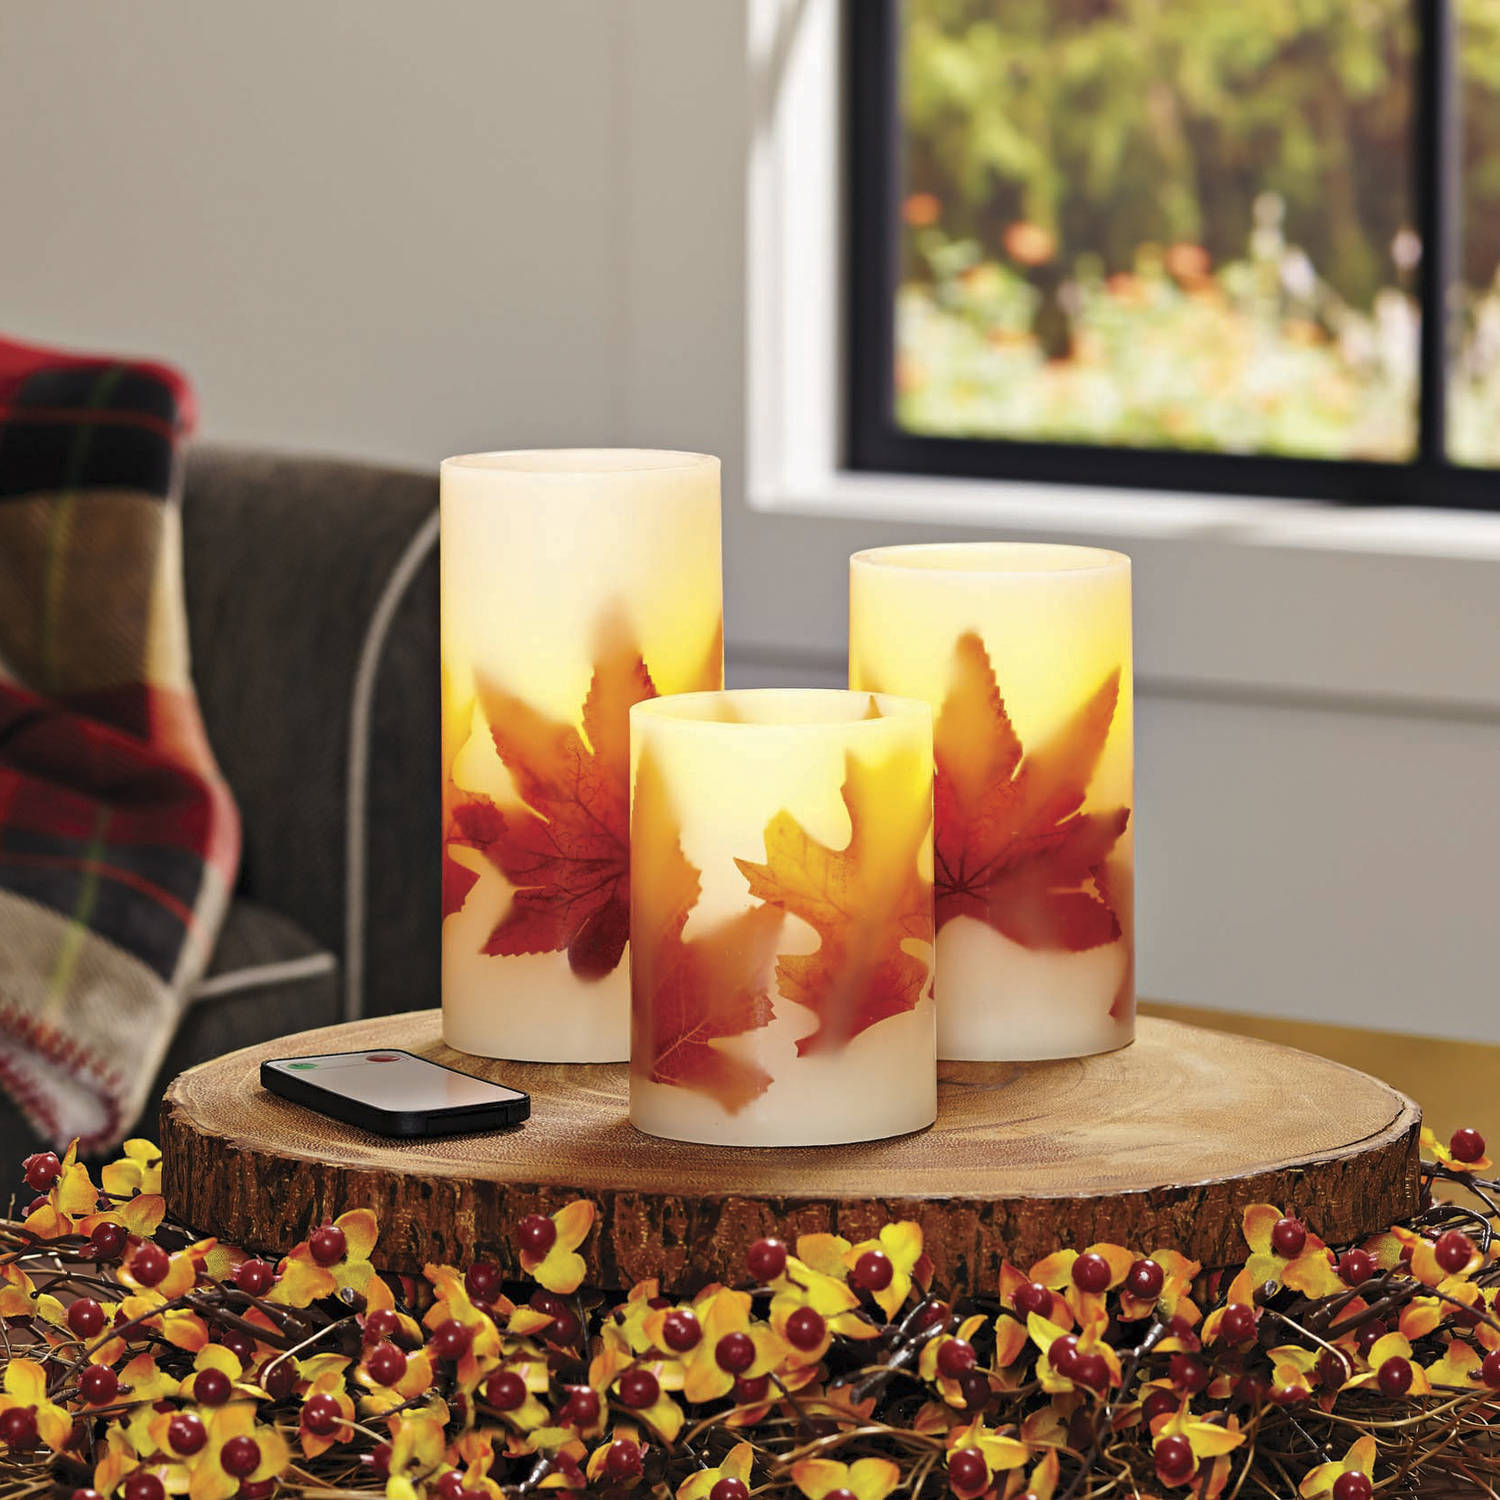 Better Homes and Gardens LED Candle 3-Pack, Autumn Leaves